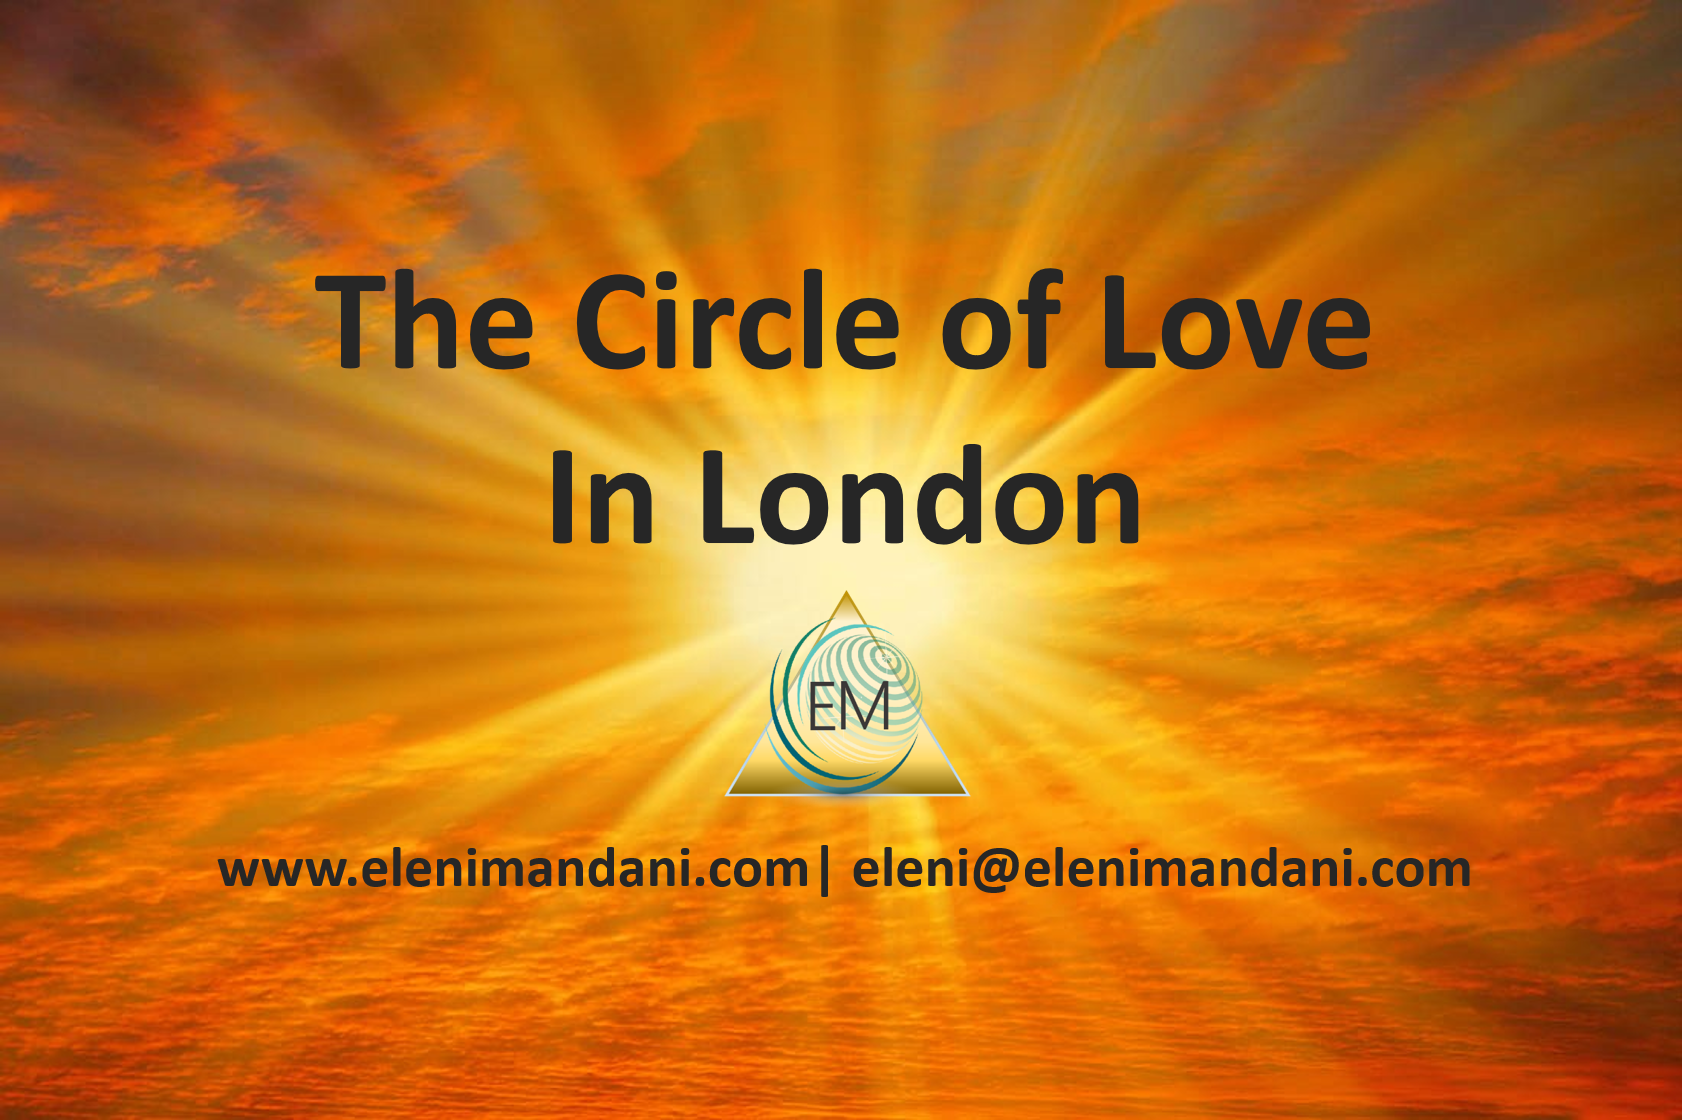 The Circle of Love in London